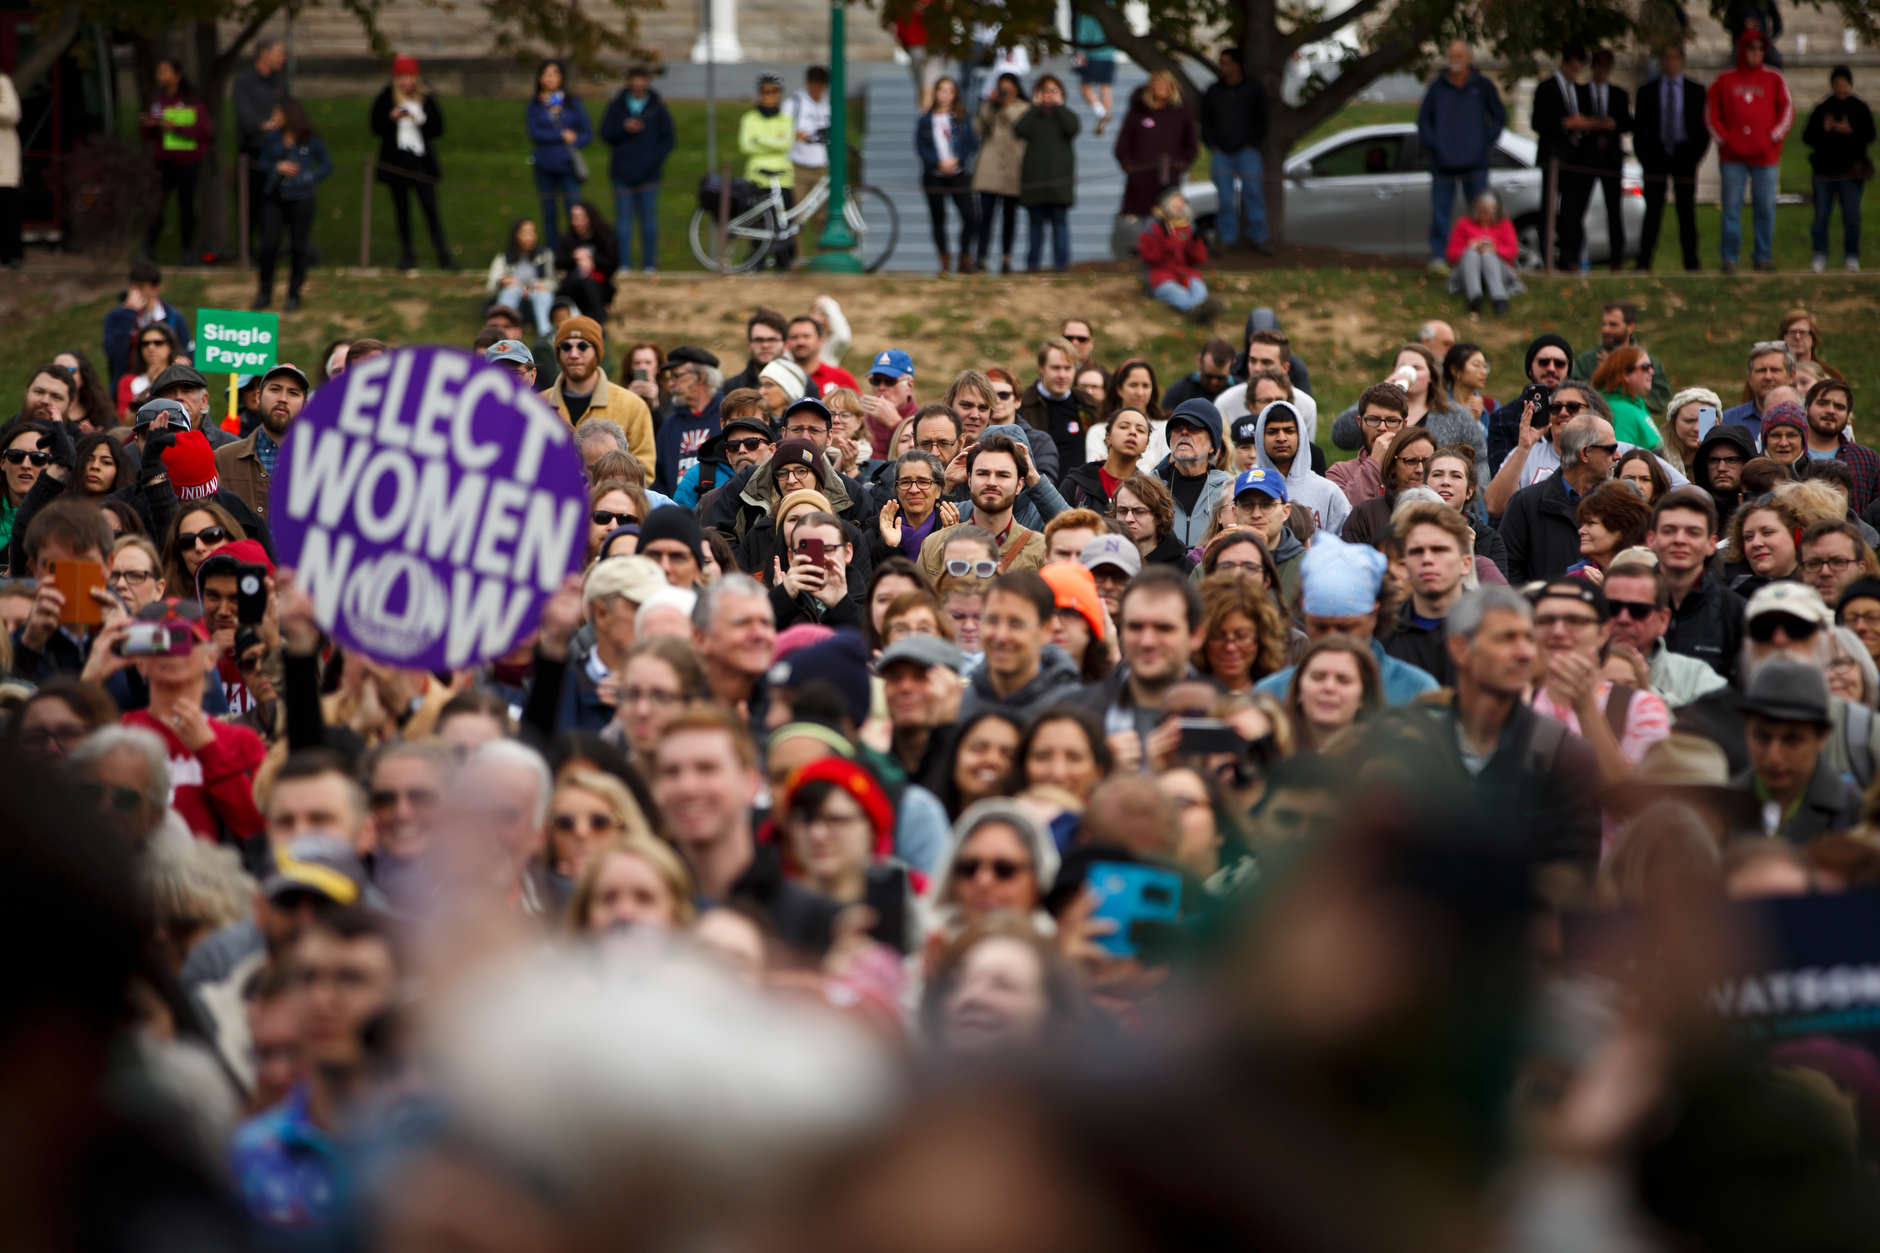 Supporters gather in Dunn Meadow to hear U.S. Sen. Bernie Sanders, I-VT, campaign for Liz Watson, the Democratic nominee for Indiana's 9th congressional district, at Indiana University Bloomington on Friday, Oct. 19, 2018. (James Brosher/IU Communications)